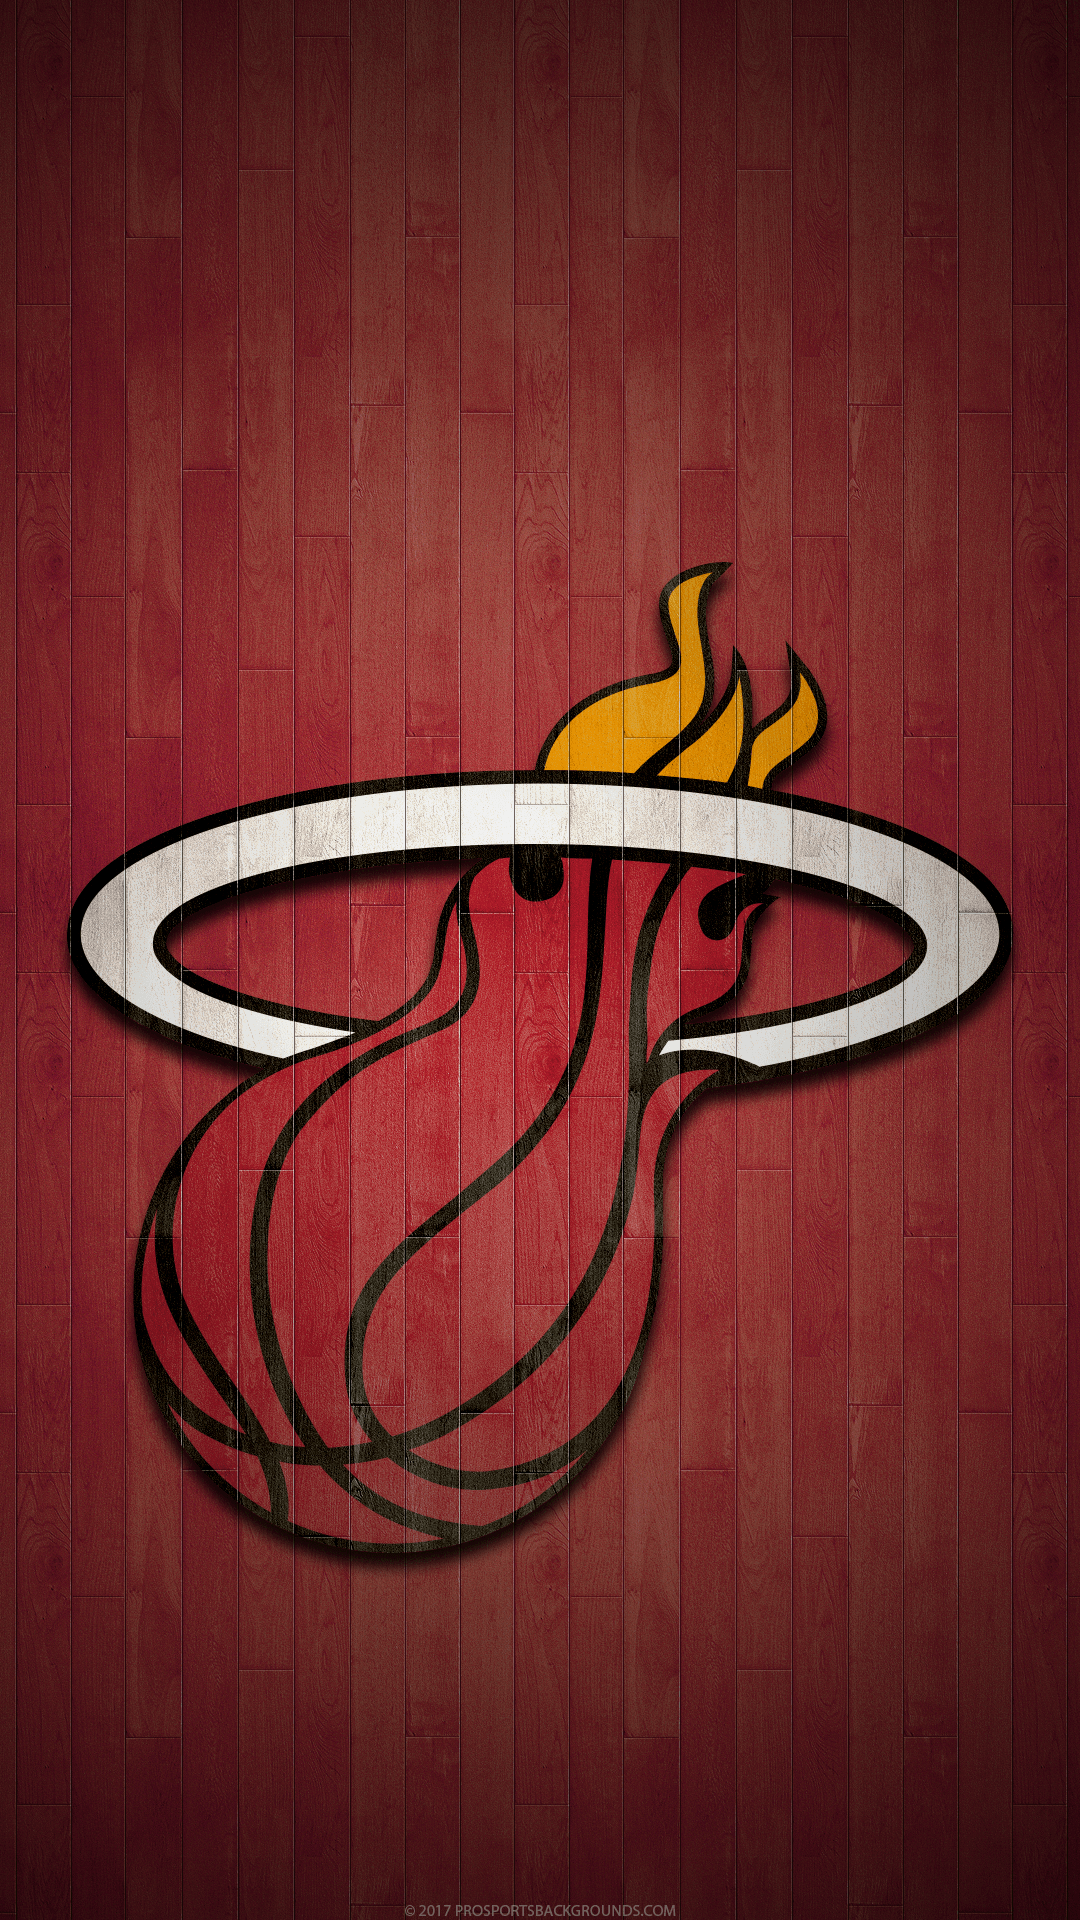 Pacific northwest art wallpapers top free pacific - Miami heat wallpaper android download ...